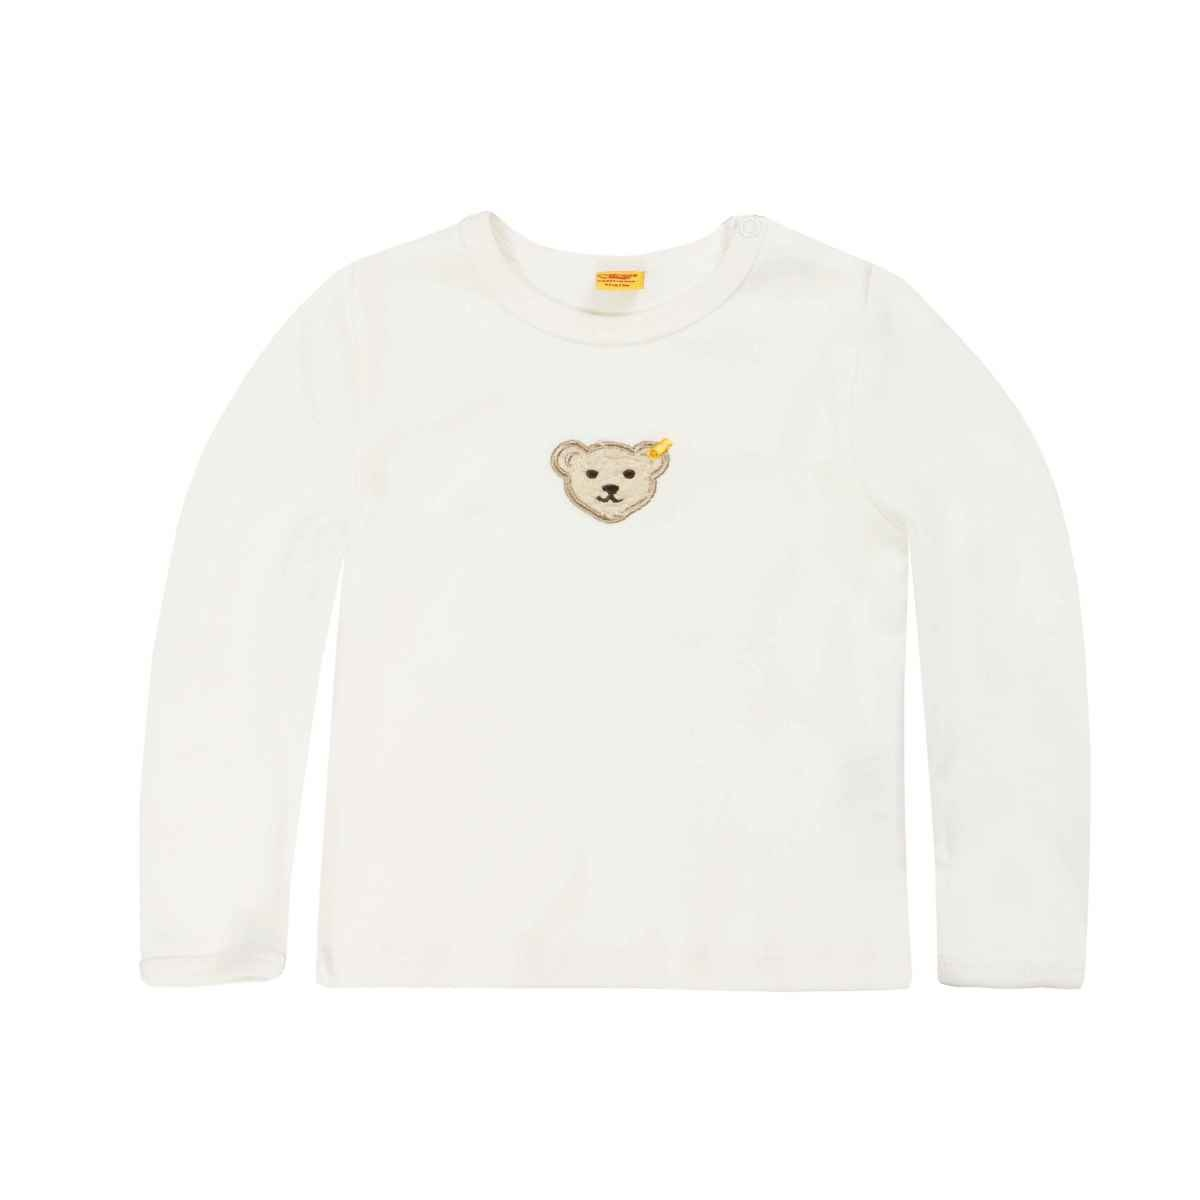 Steiff Steiff White T-shirt With Teddy Motif